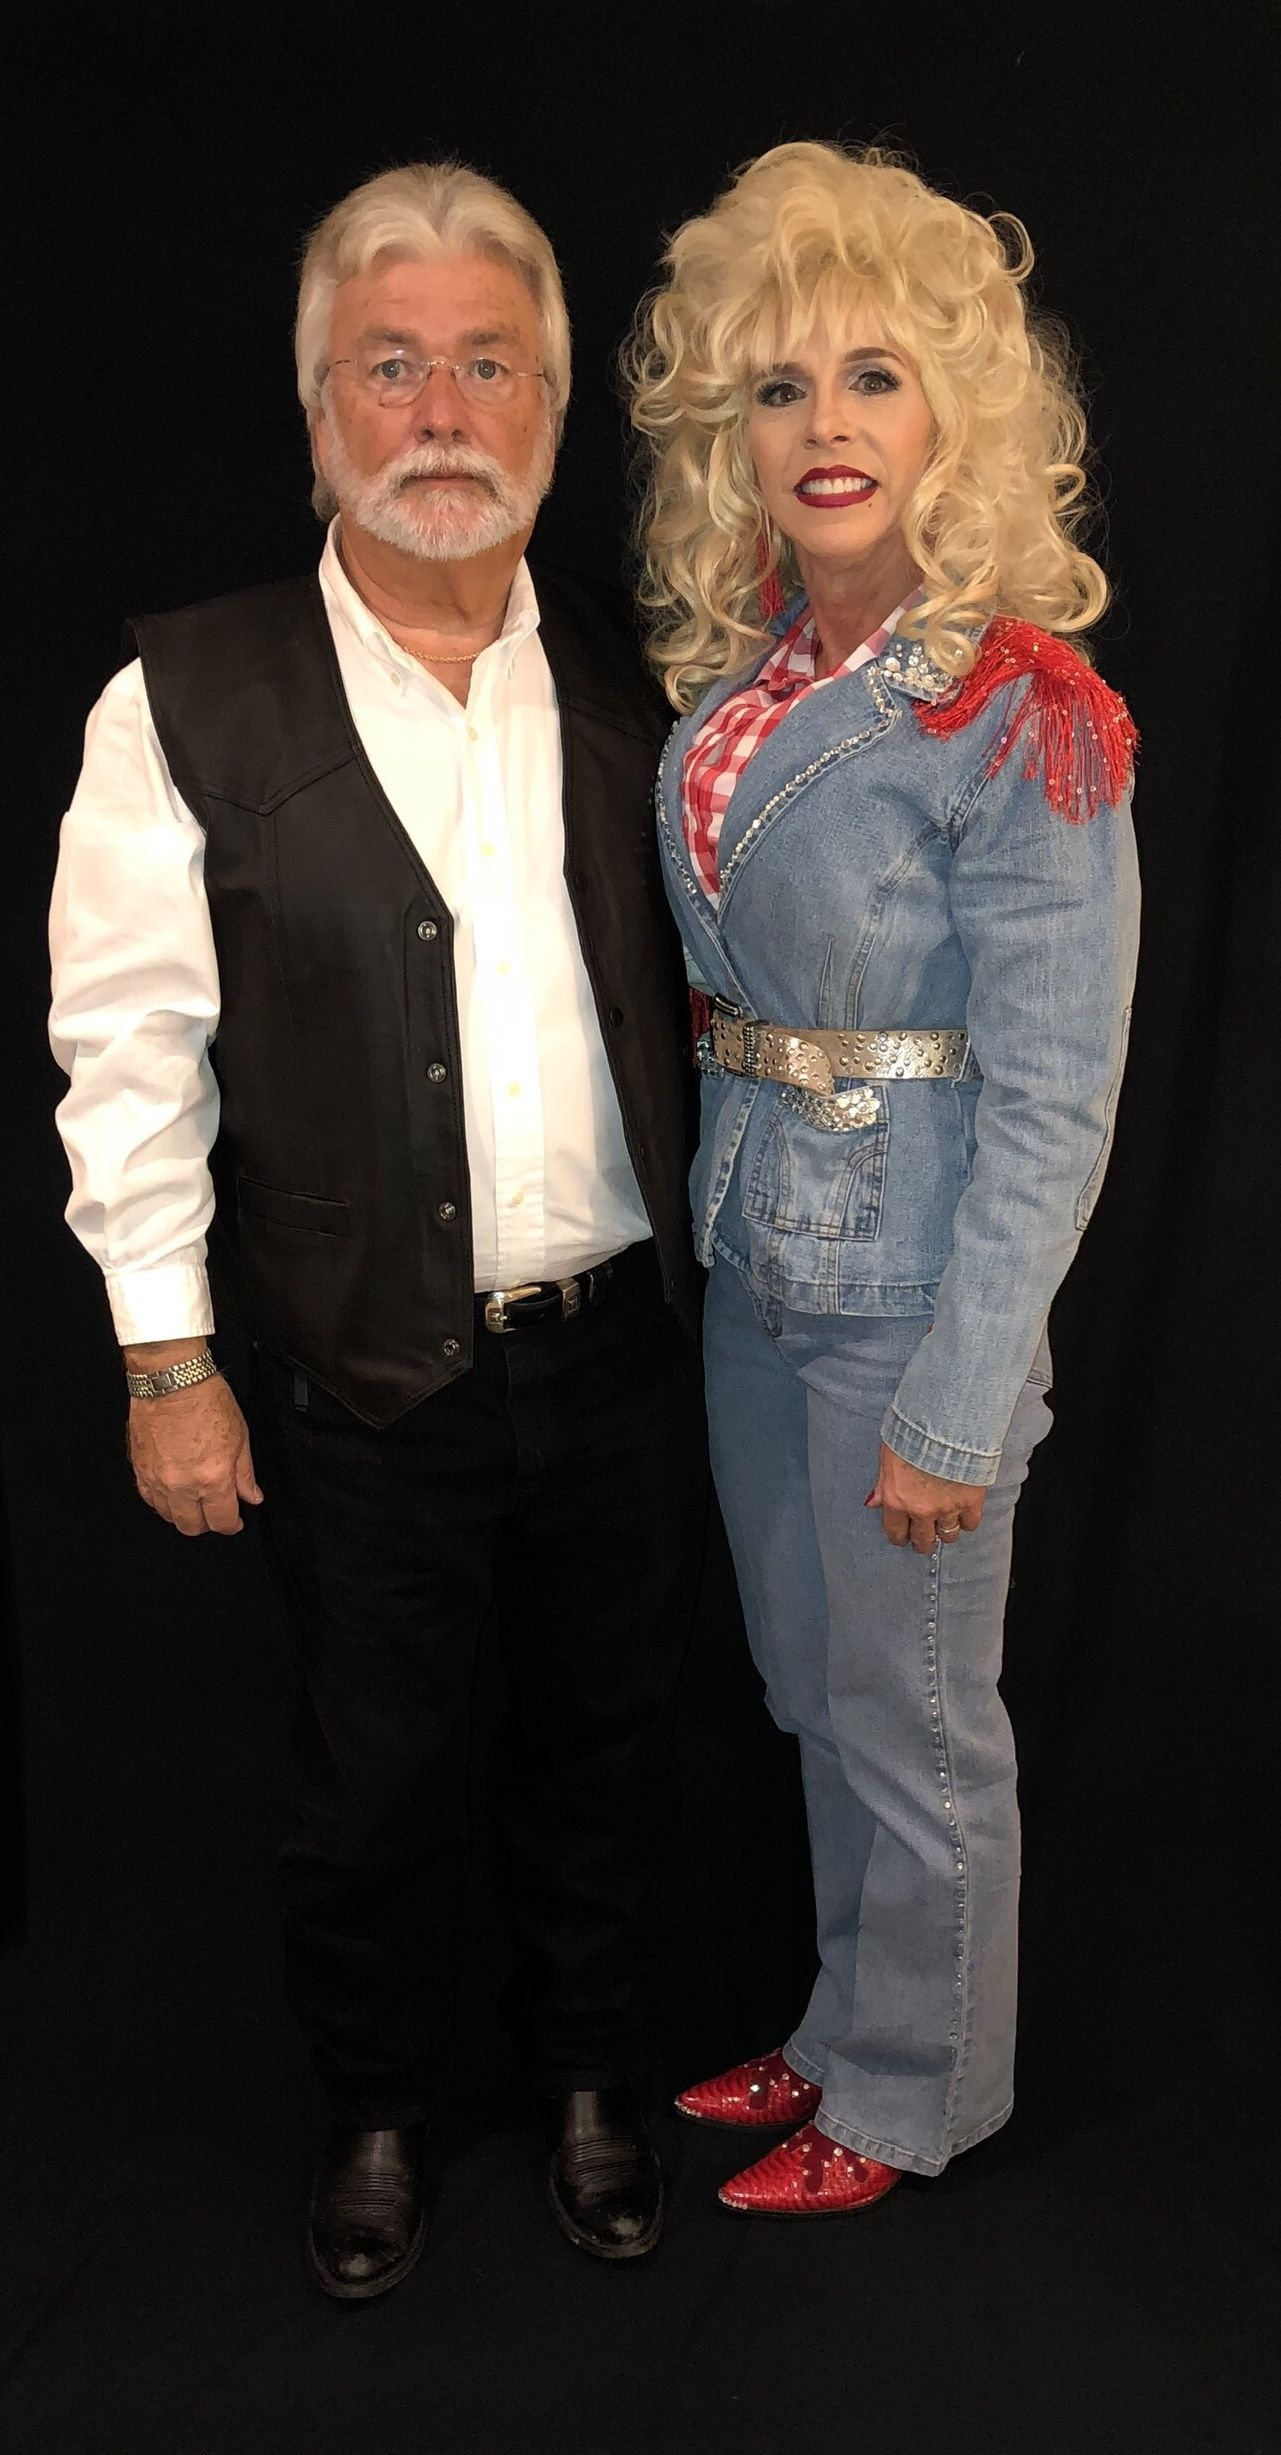 Kenny and Dolly (With images)   Thanksgiving costumes, Mr ...